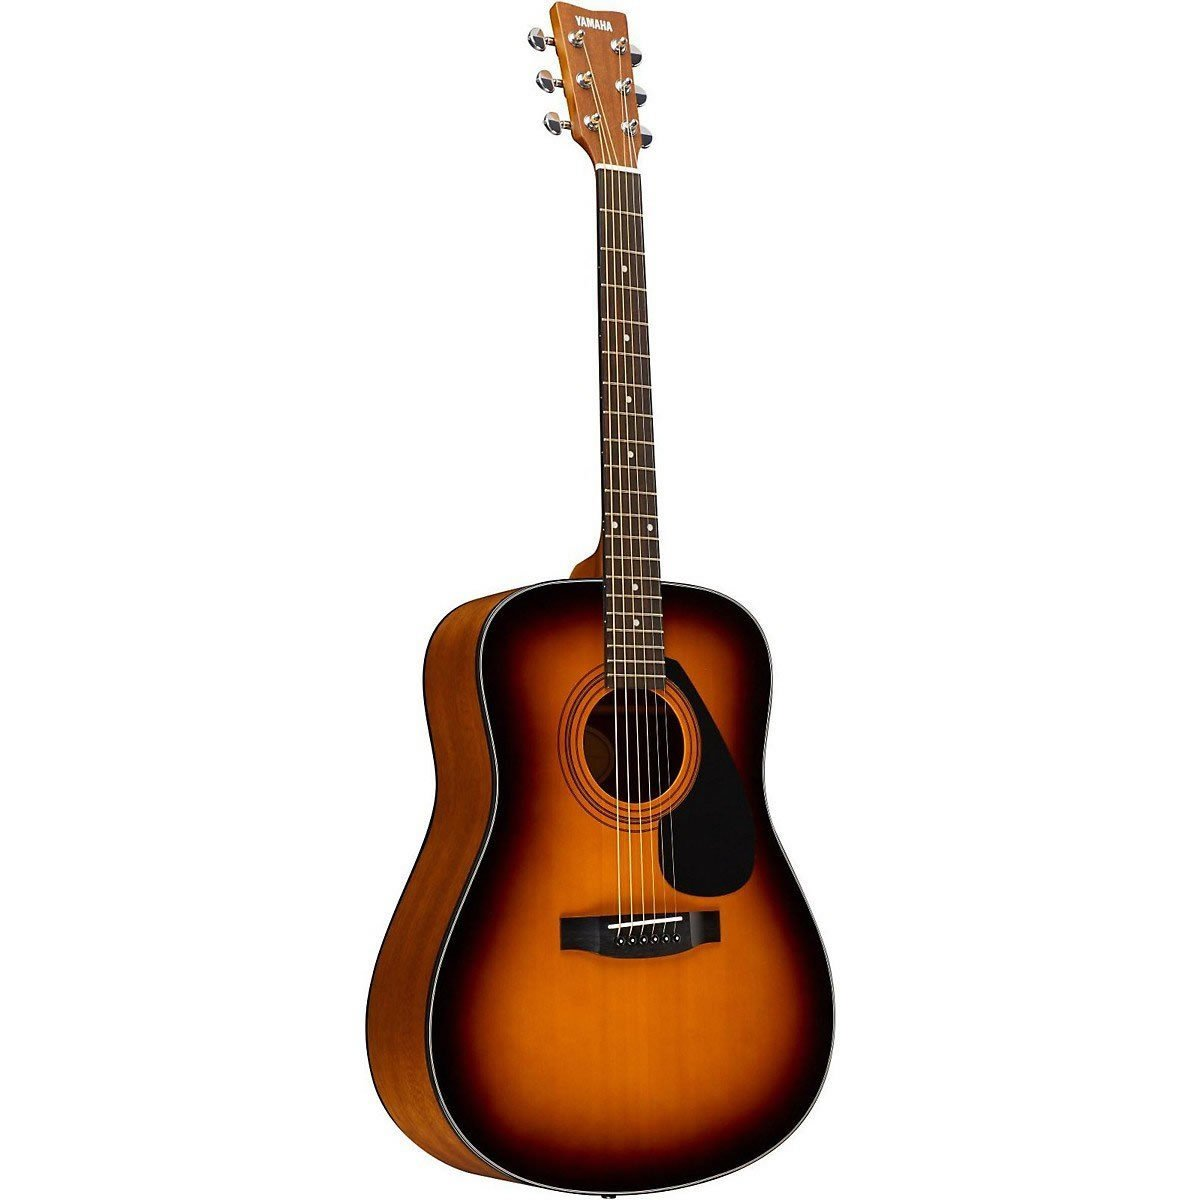 Amazon.com: Yamaha GigMaker Standard Acoustic Guitar Package (Tobacco Sunburst) with FREE Bonus Guitar Stand & Polishing Cloth: Musical Instruments